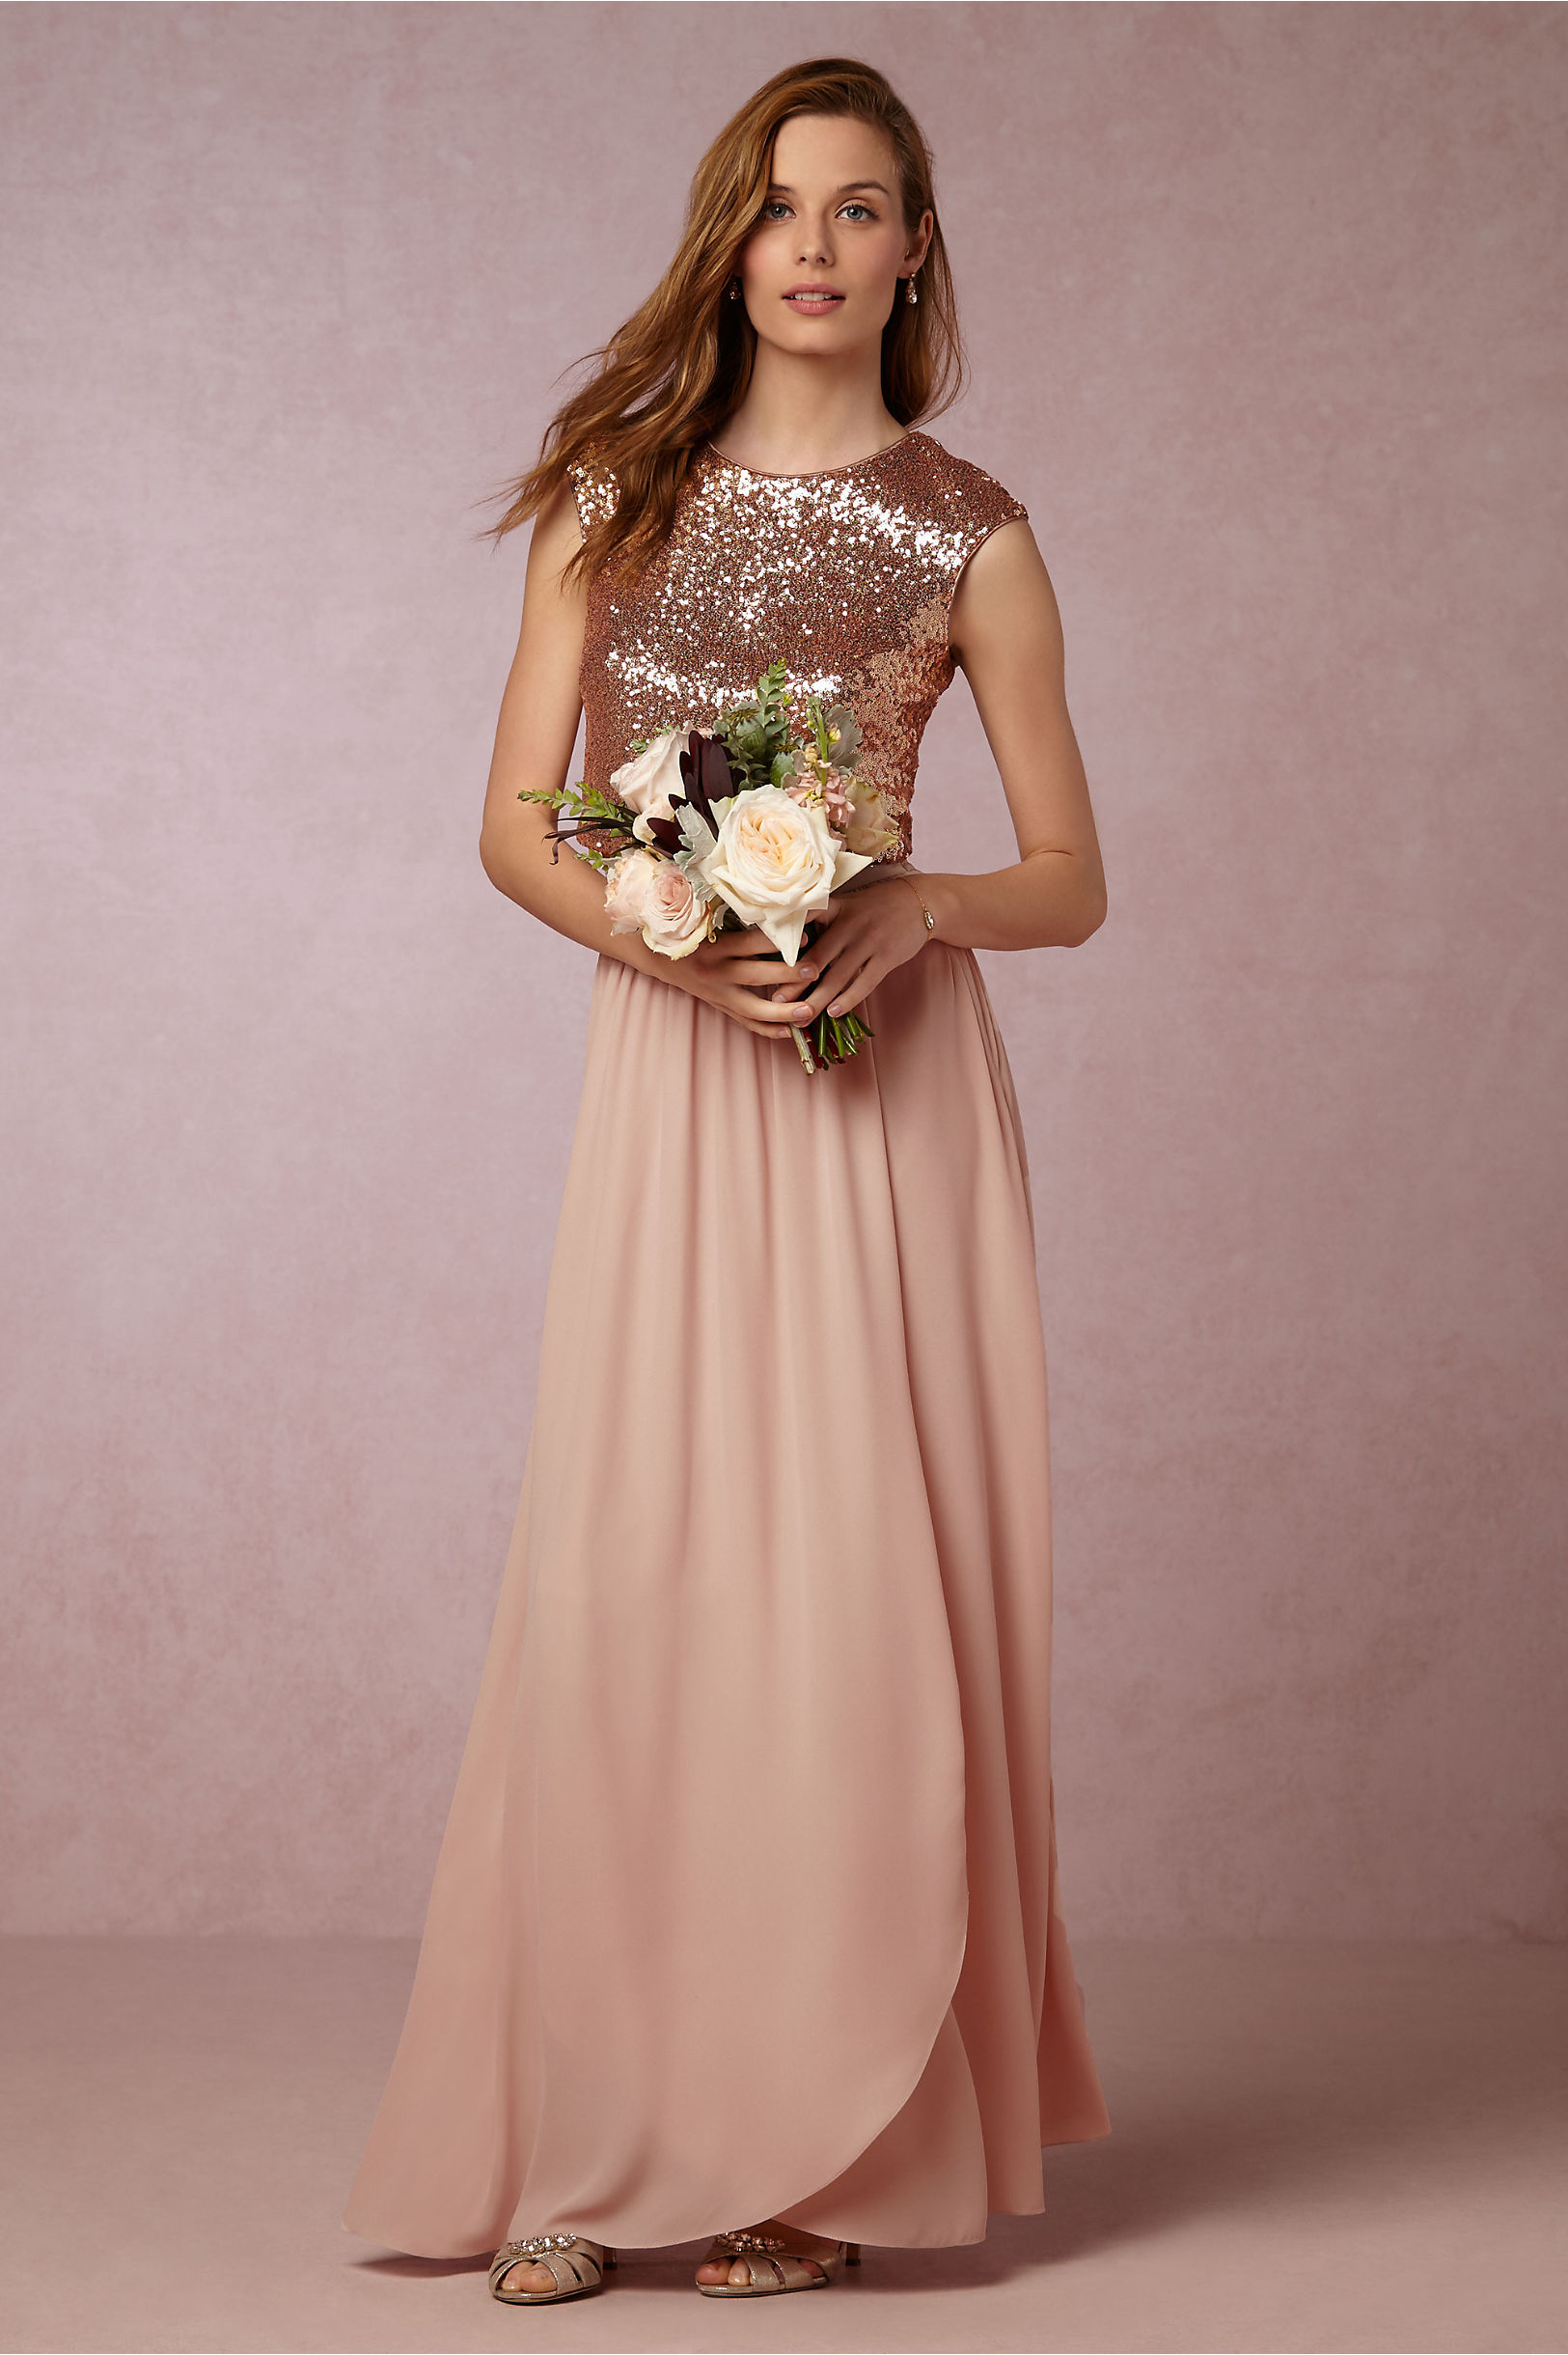 Kaity Top & Jane Skirt in Bridesmaids & Bridal Party | BHLDN